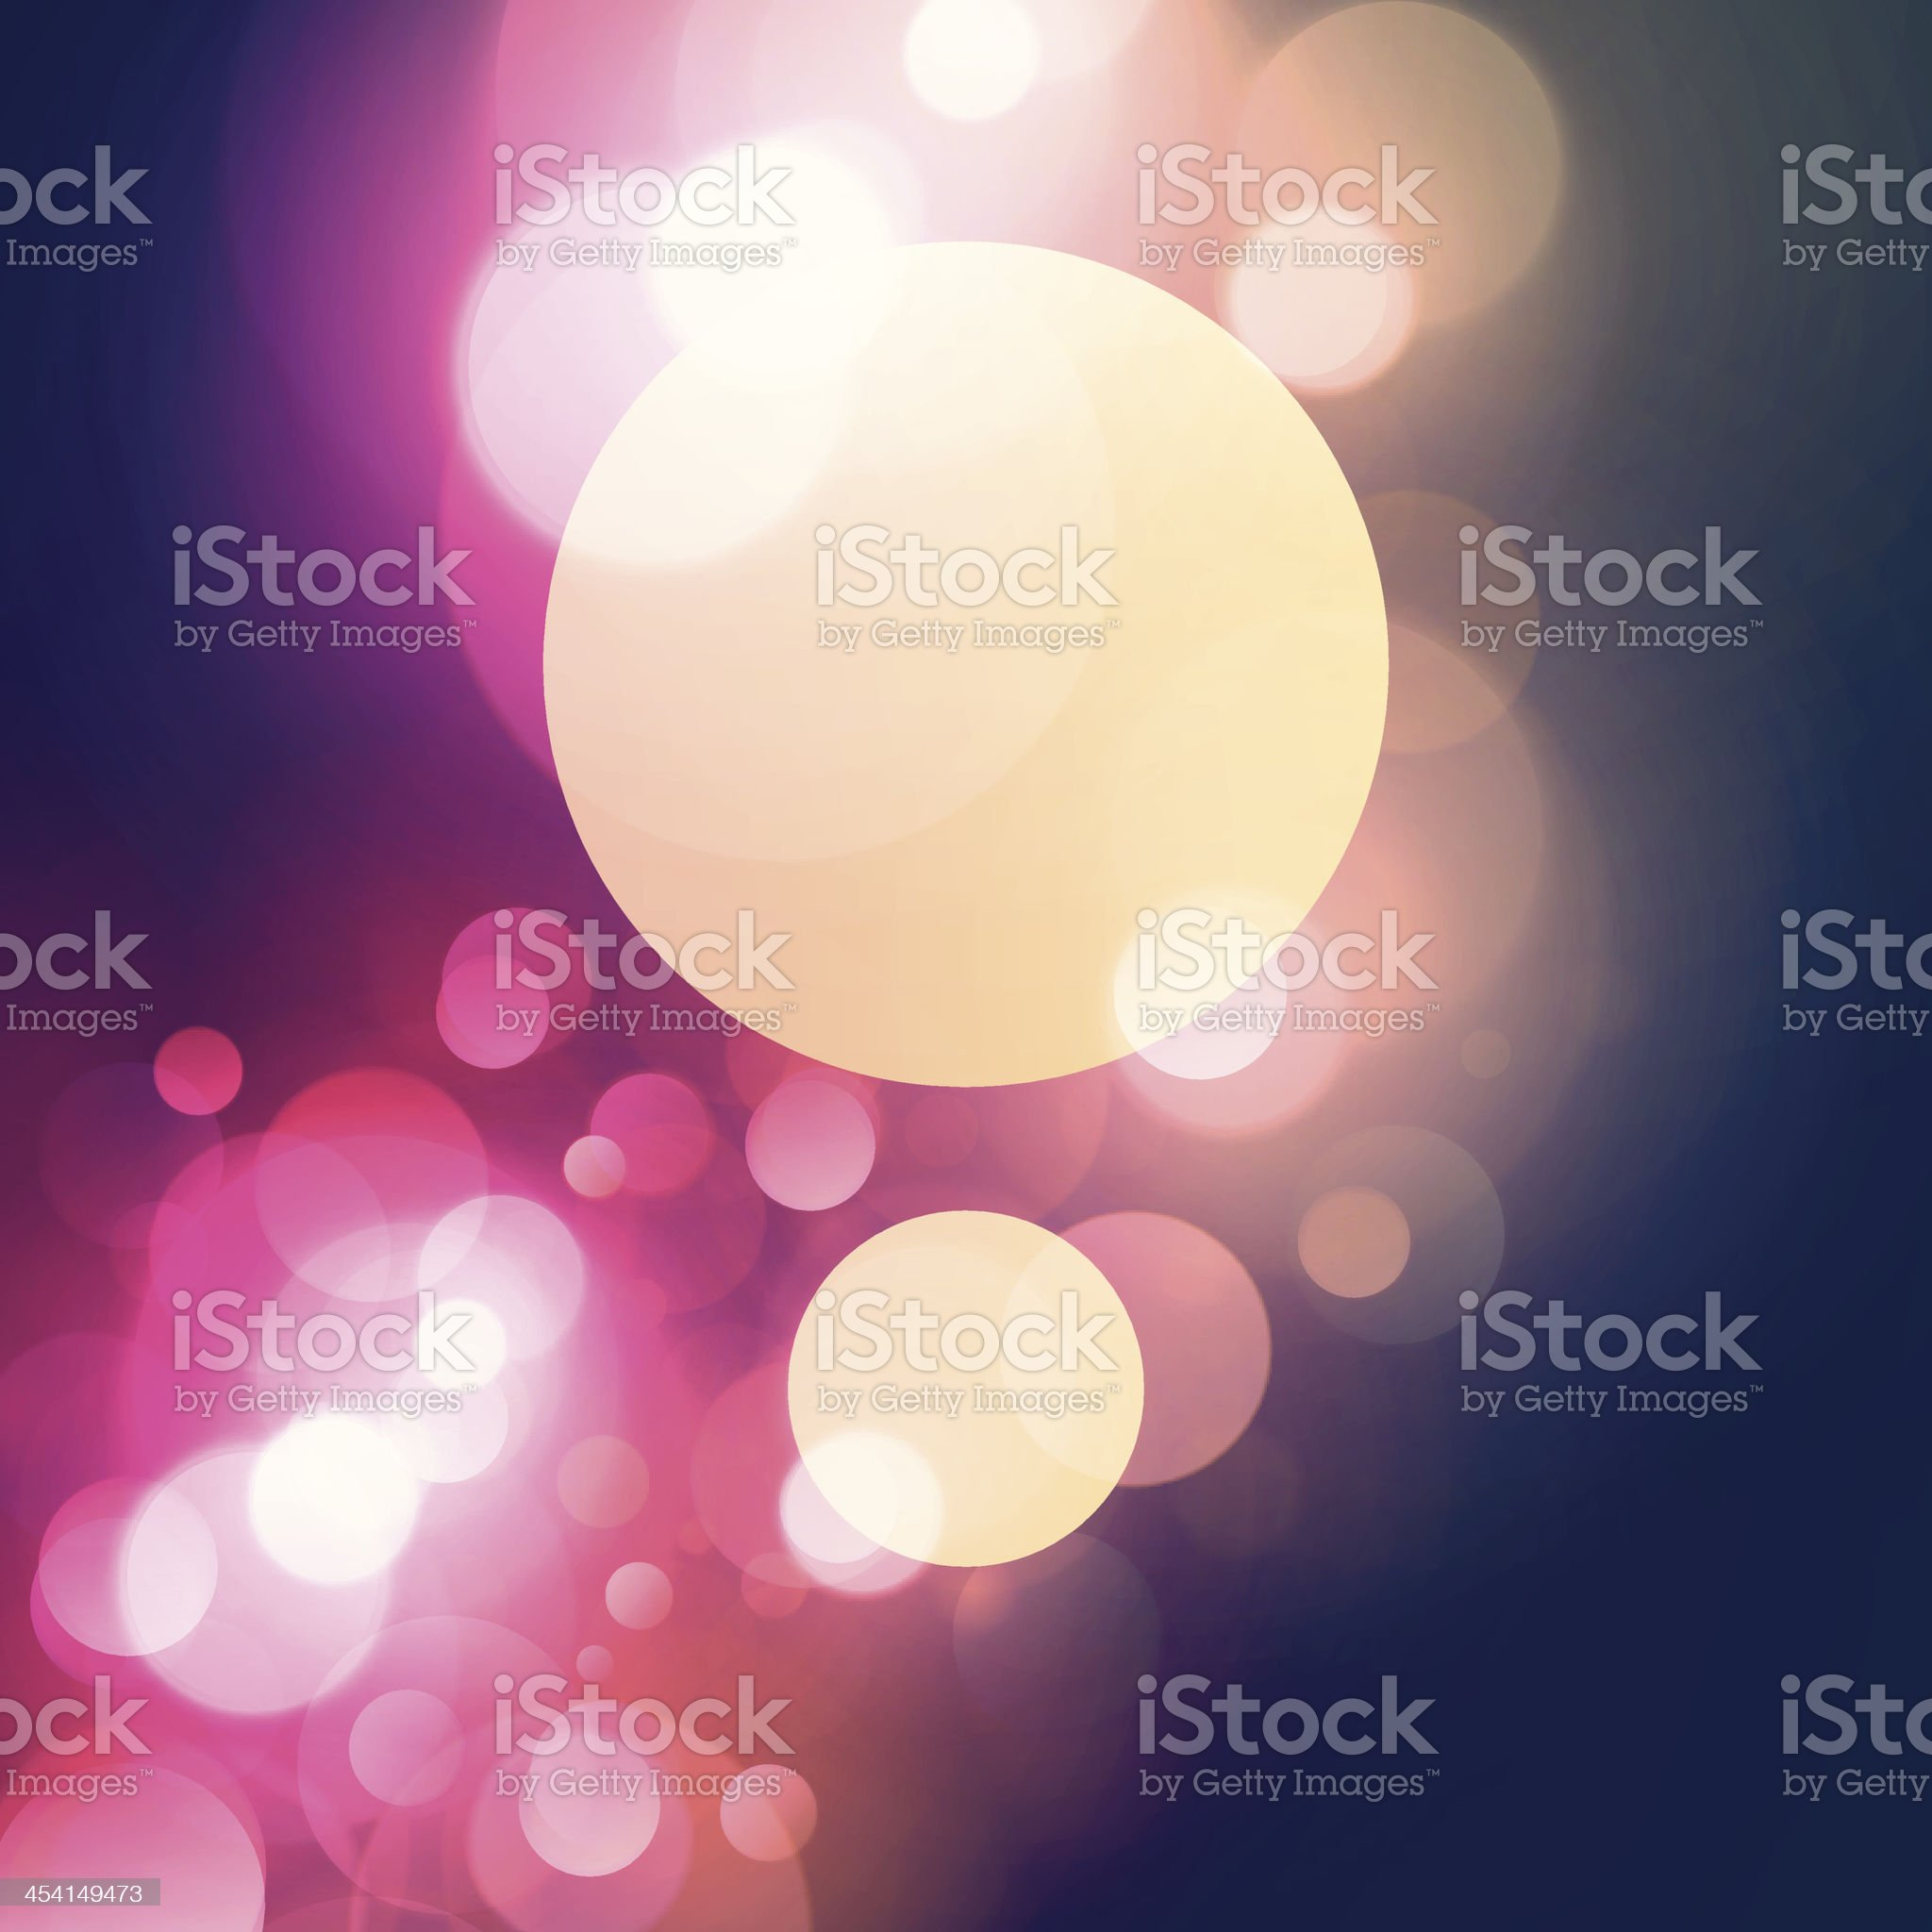 Simple Vintage Layout Copy Space Between Blurry Light Spots Background royalty-free stock vector art